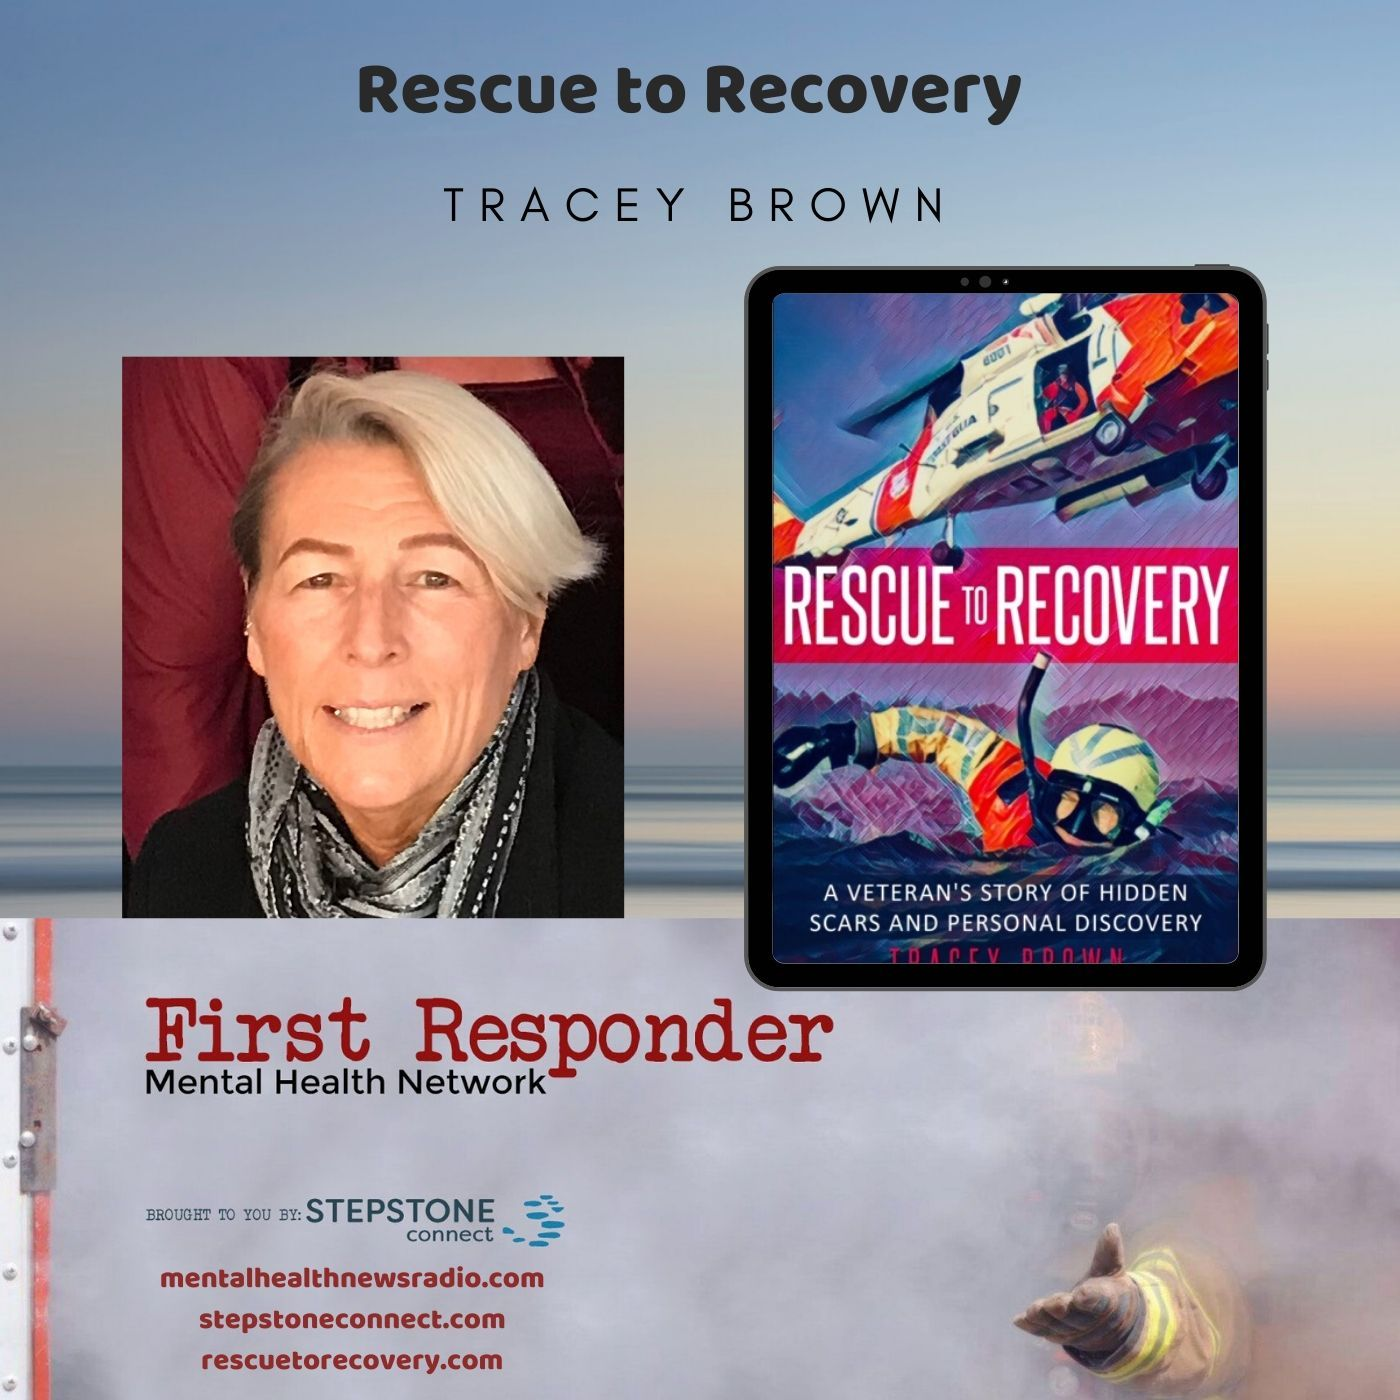 Mental Health News Radio - Rescue to Recovery with Tracey Brown